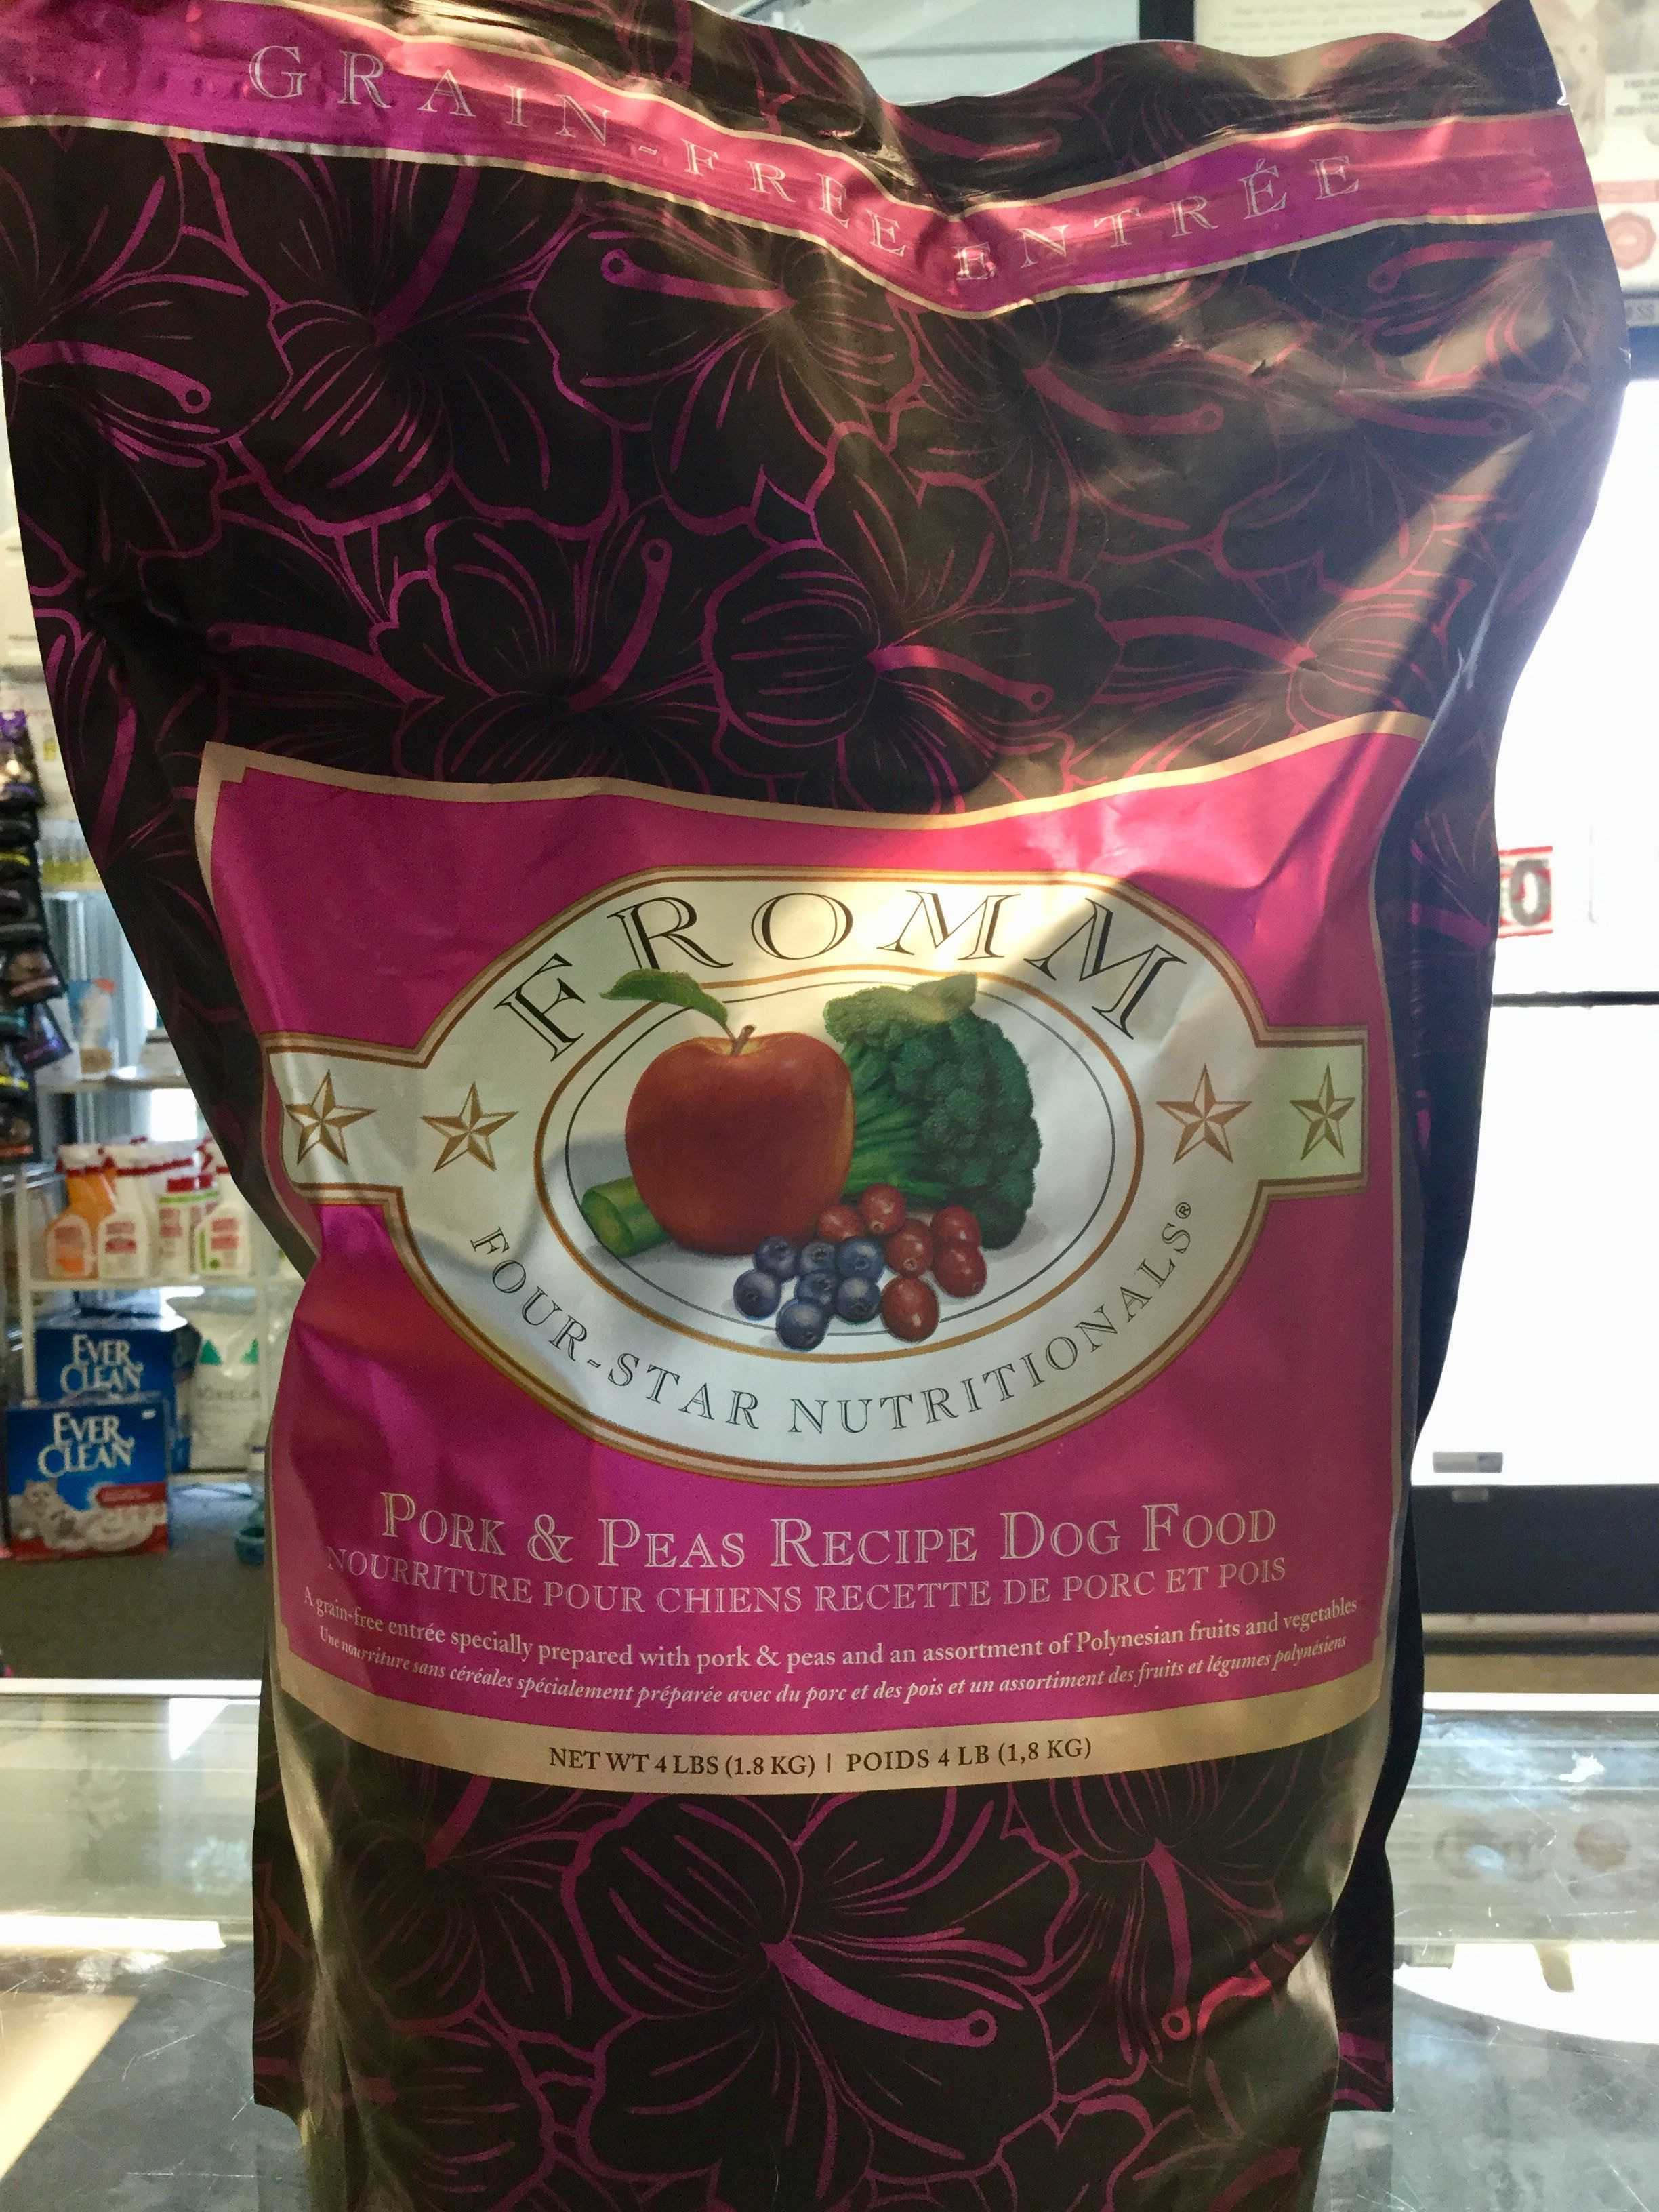 Item of the Day! Pork & Peas Dog food from Fromm Family